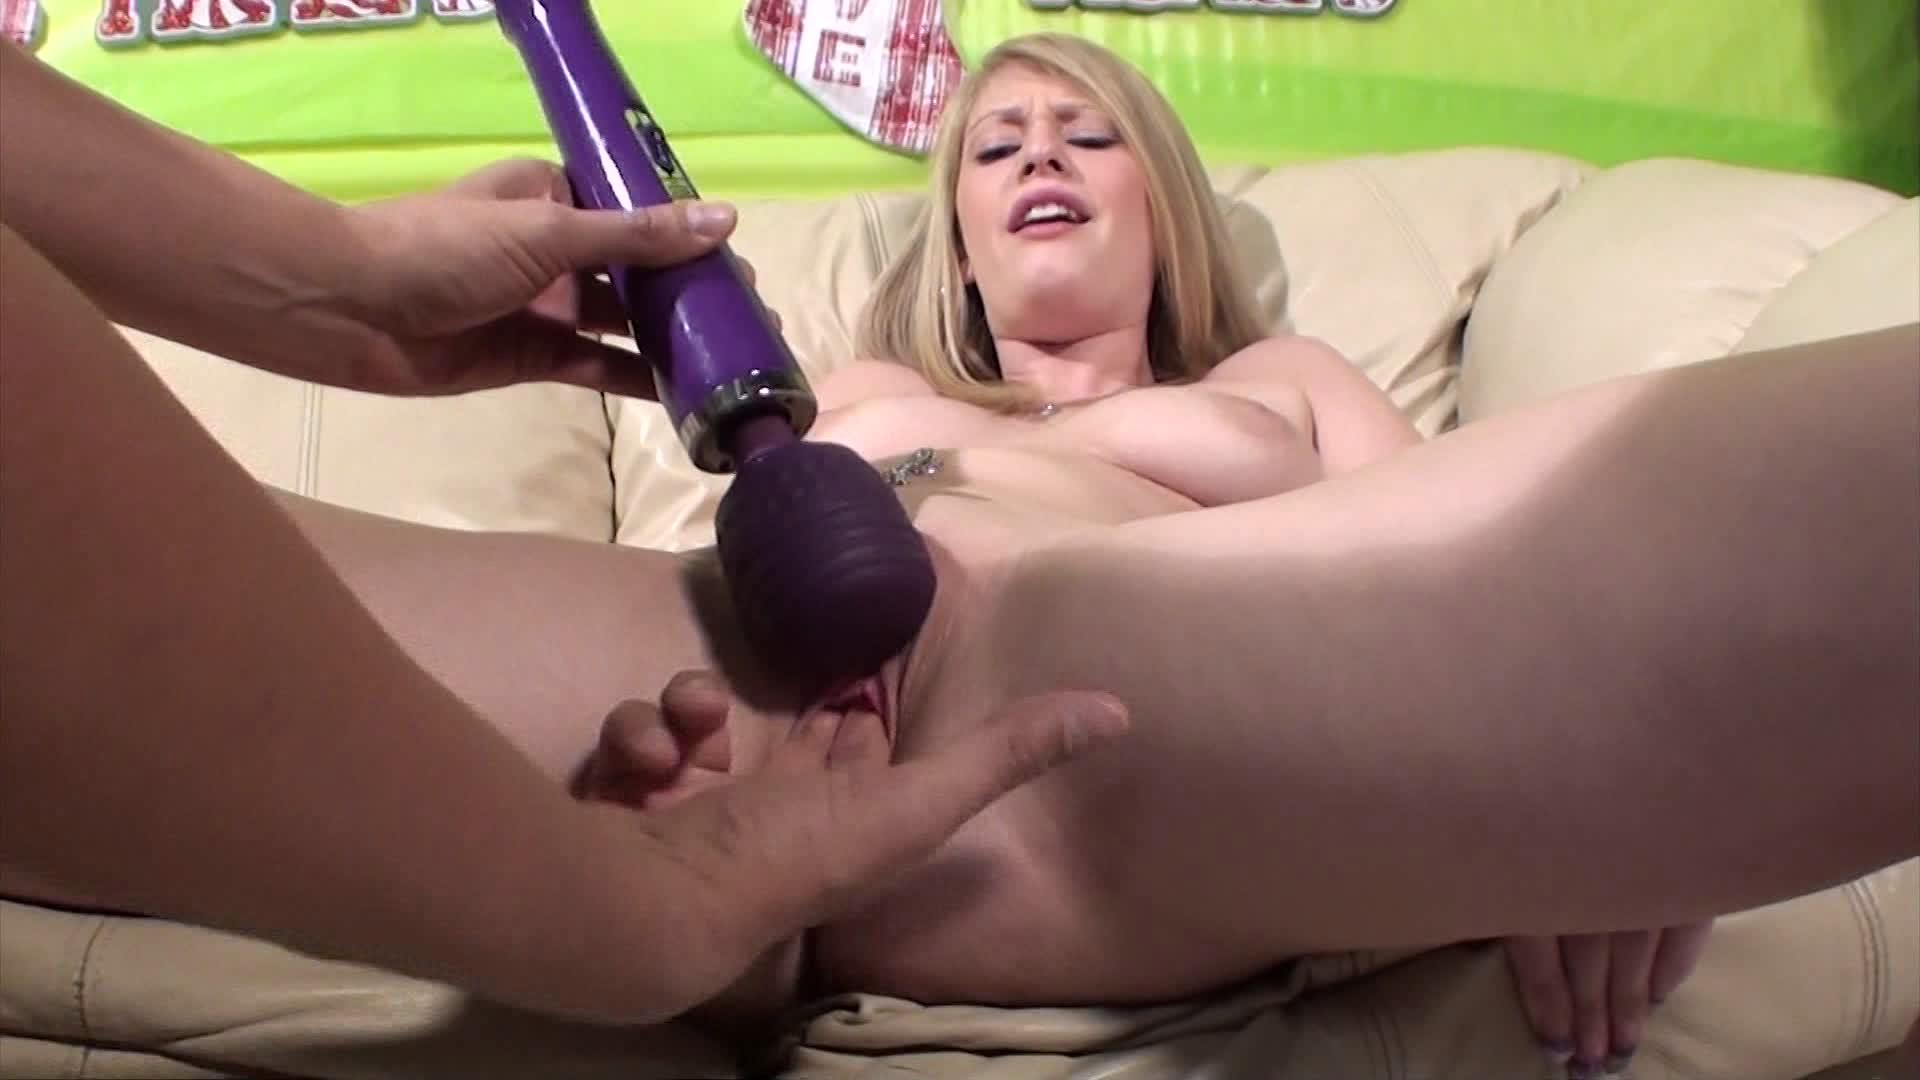 Squirting video free nudes download